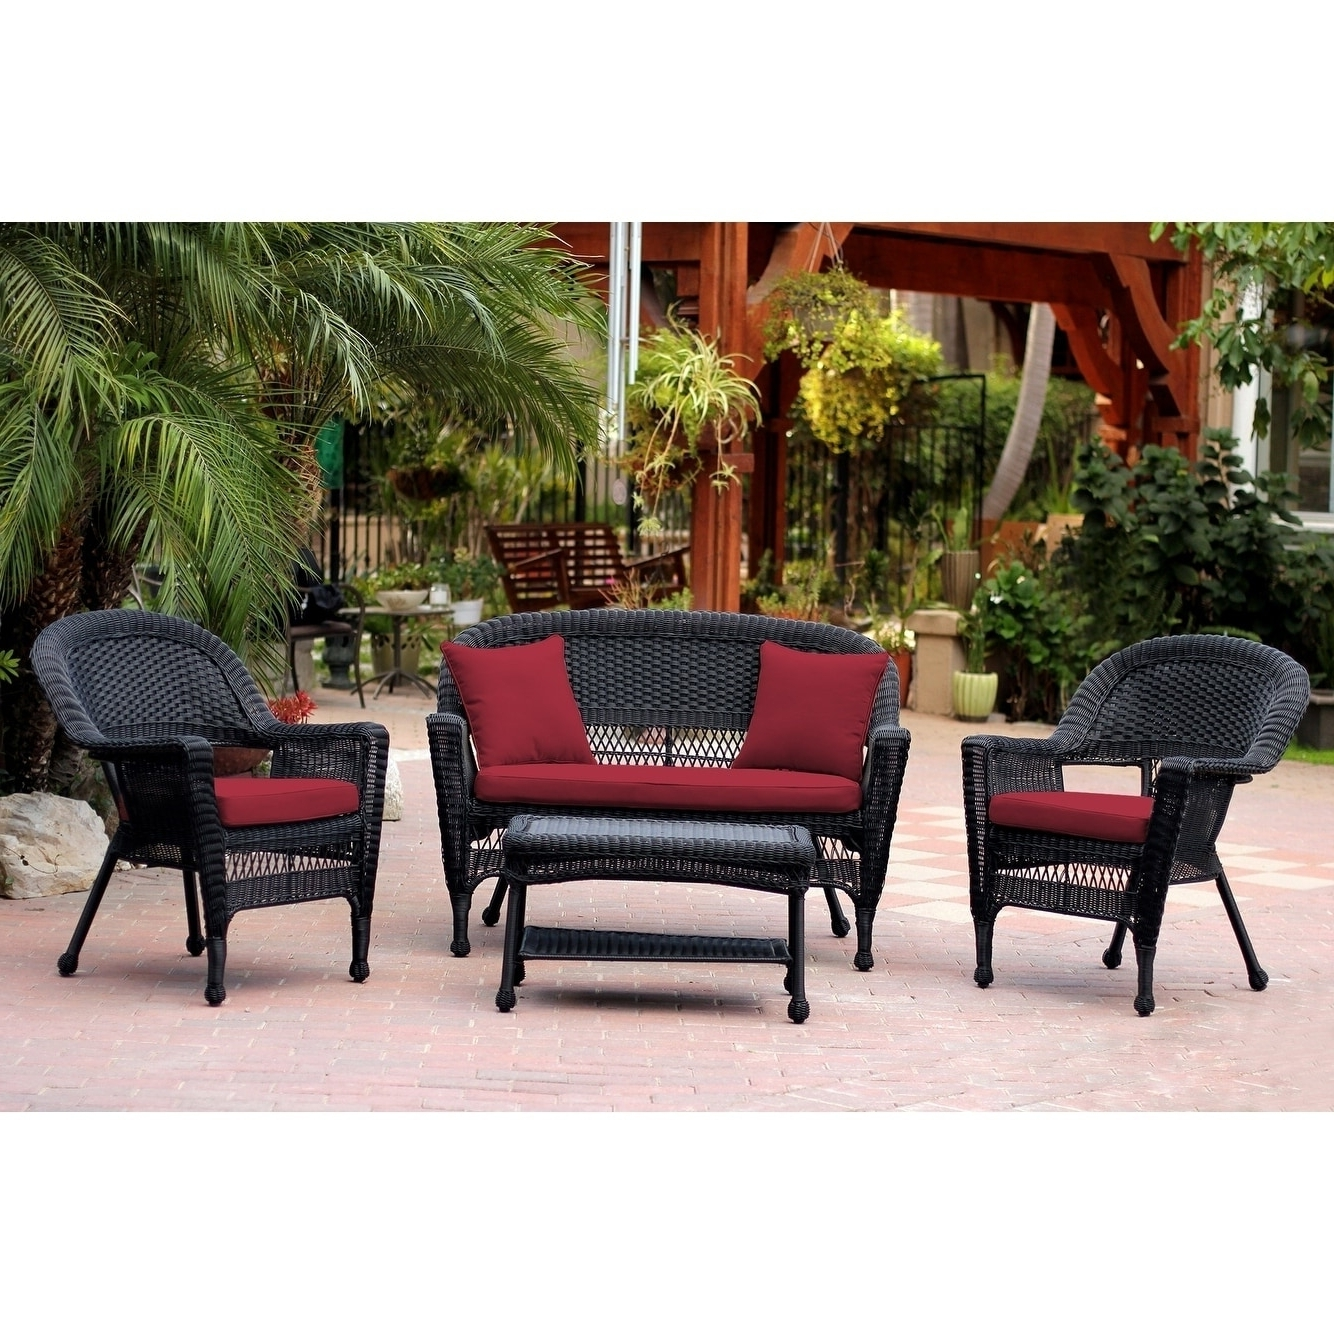 Fashionable Shop Black Wicker 4 Piece Patio Conversation Set – Free Shipping With Patio Conversation Sets Under (View 7 of 20)